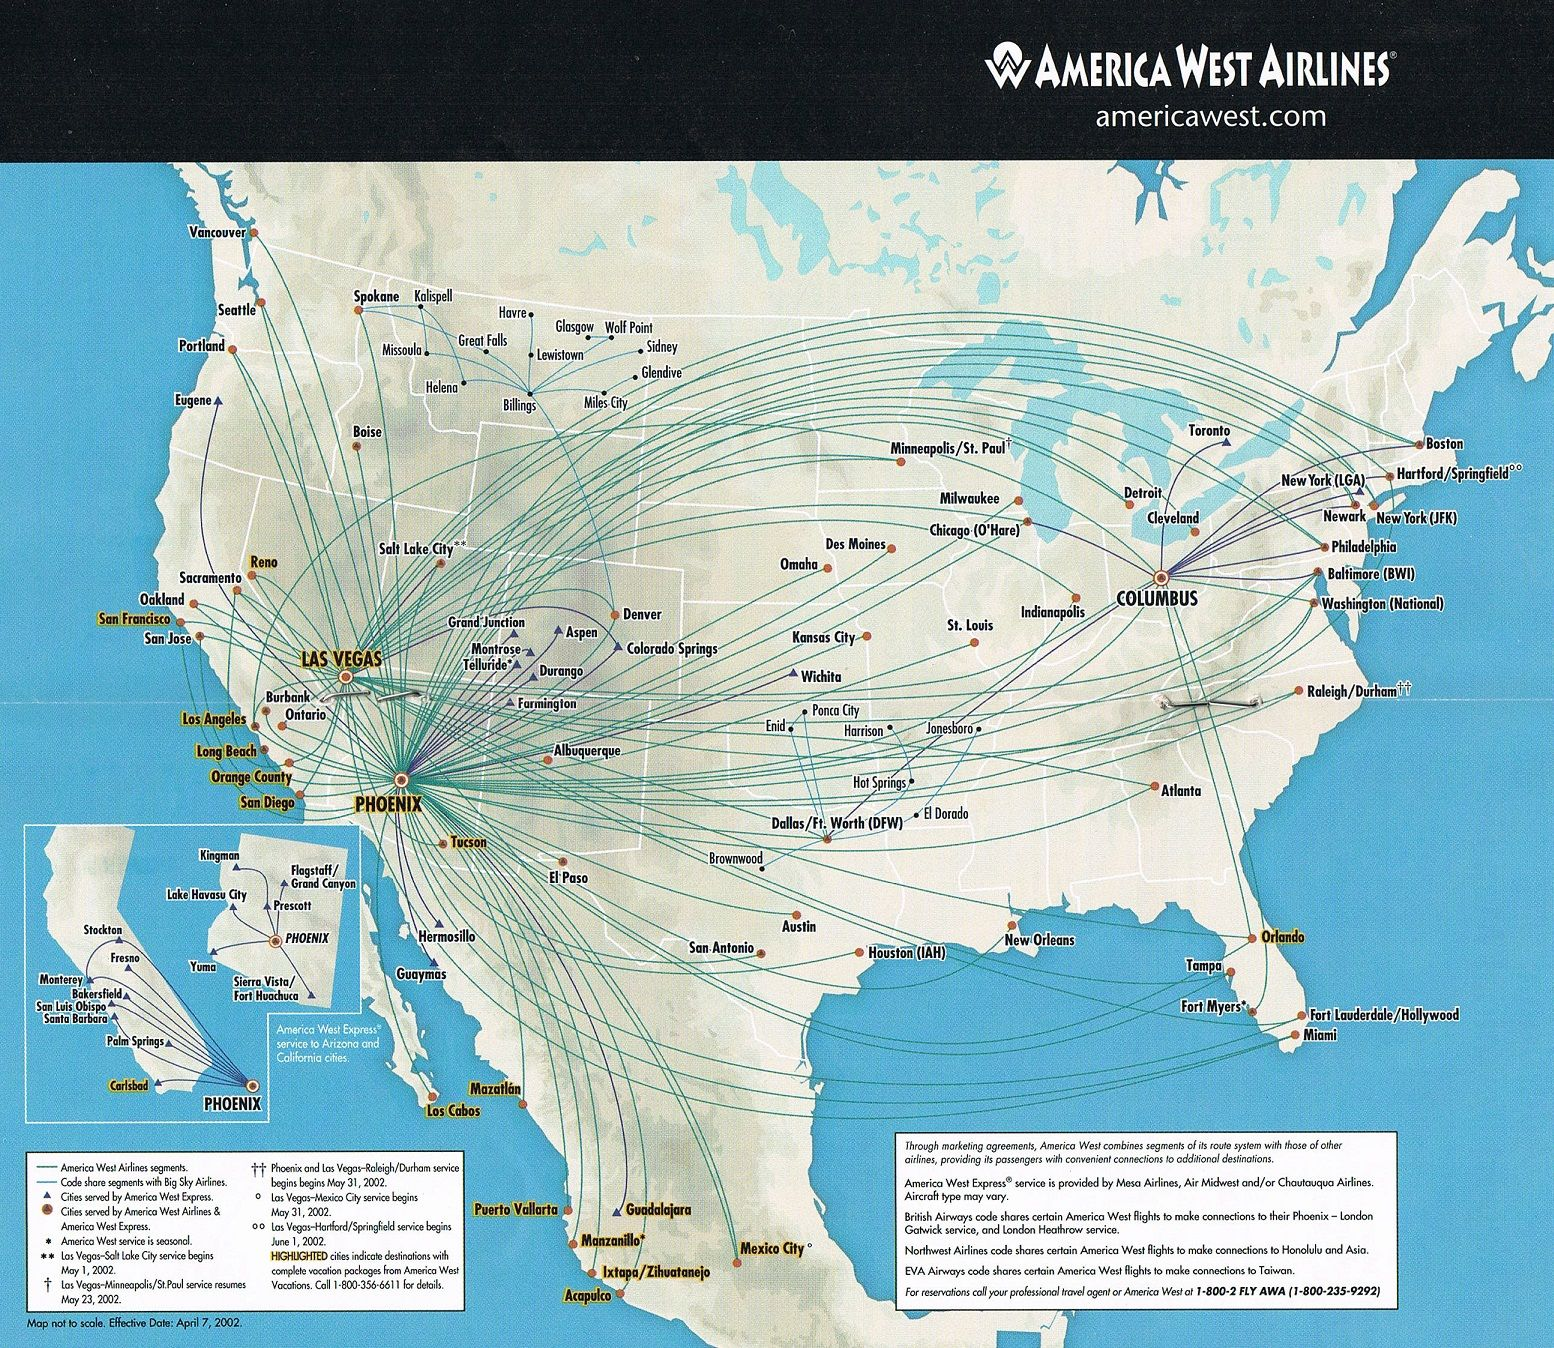 America West Airlines April 7, 2002 Route Map in 2020